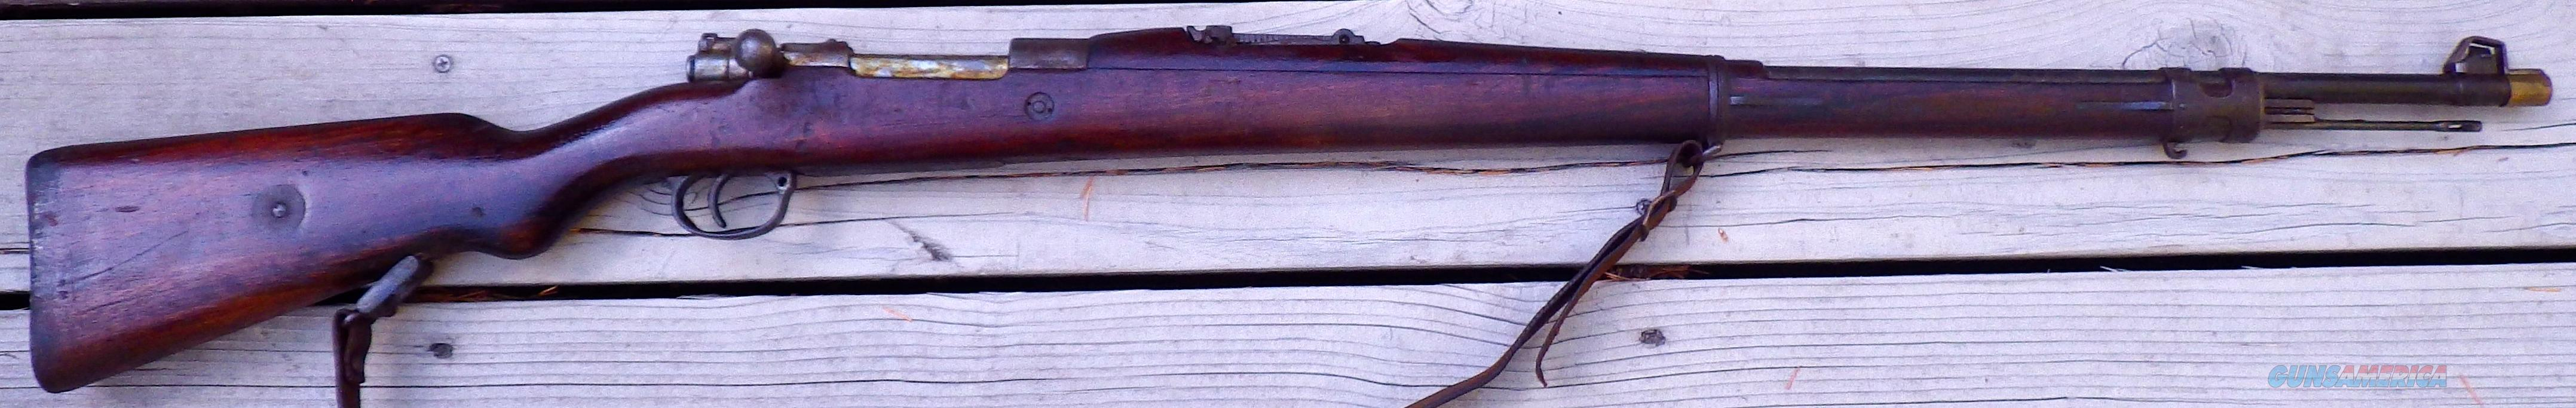 Mauser 1908, Brazil, sling, numbers match  Guns > Rifles > Military Misc. Rifles Non-US > Other